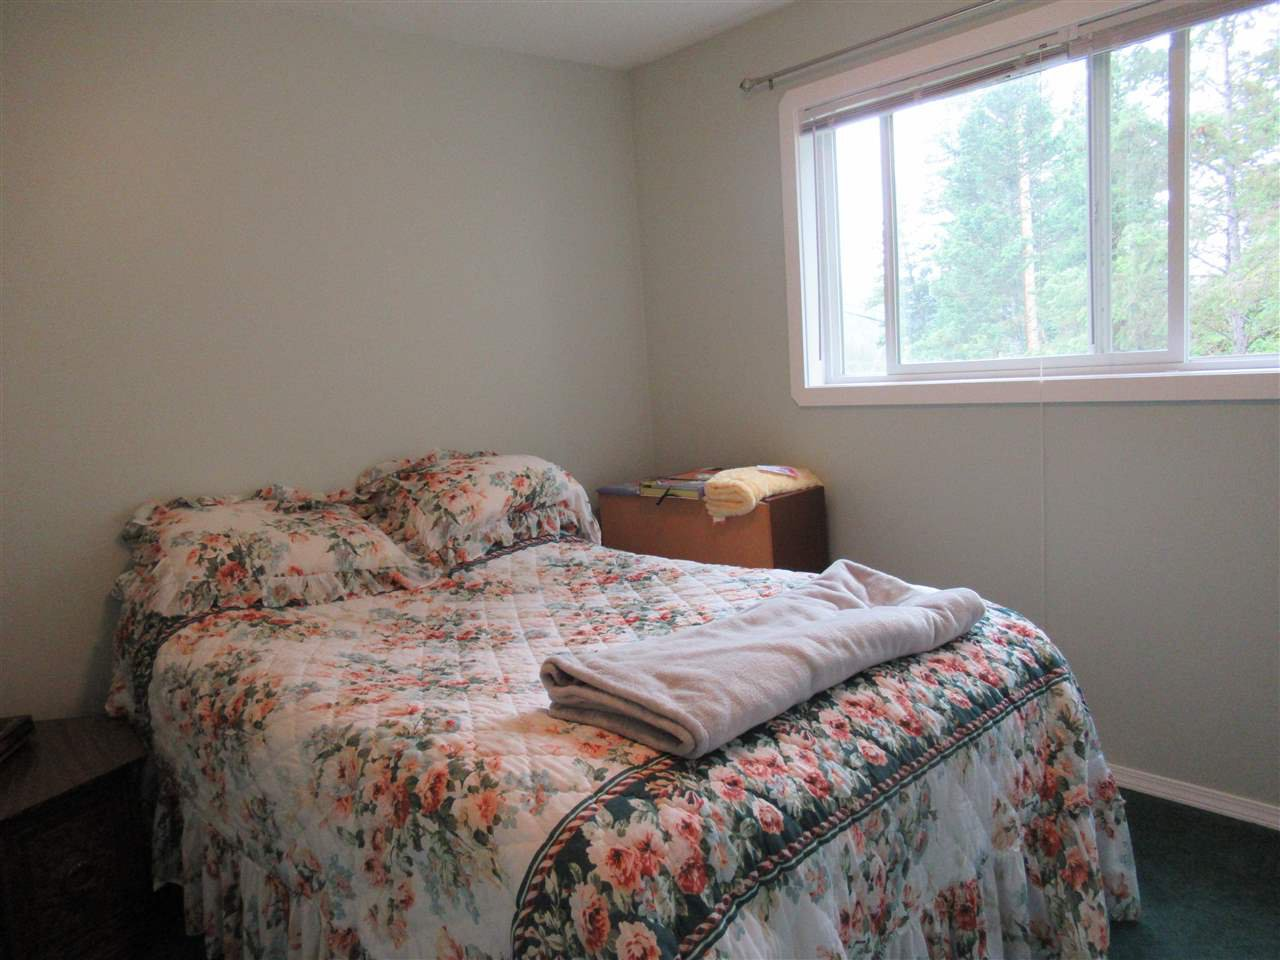 Photo 12: Photos: 3035 FIRDALE Drive in Williams Lake: Williams Lake - Rural North House for sale (Williams Lake (Zone 27))  : MLS®# R2484738